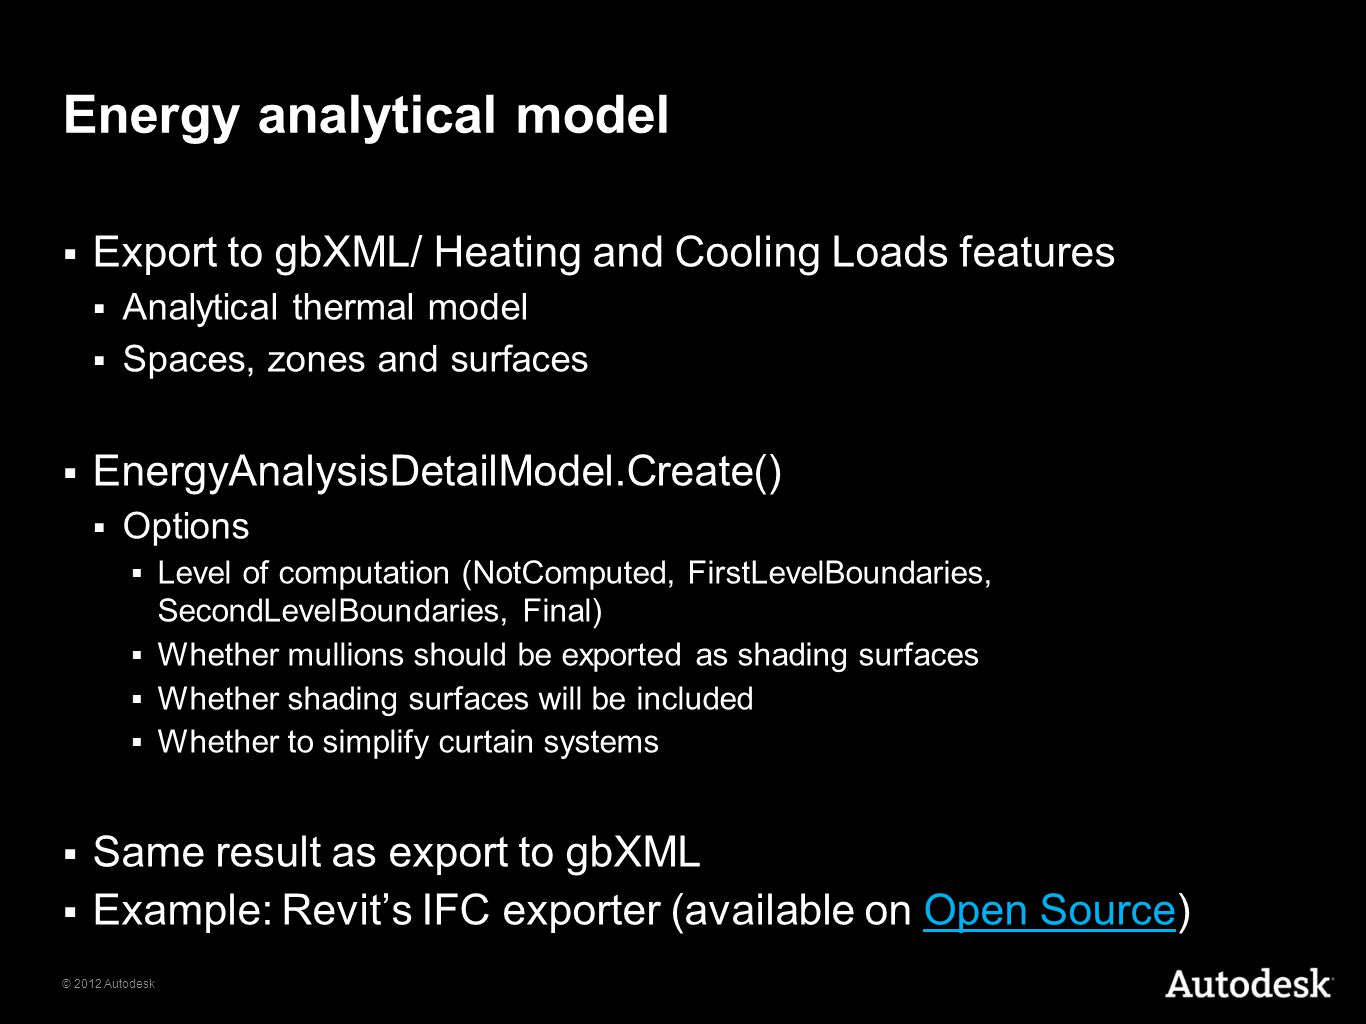 © 2012 Autodesk Energy analytical model Export to gbXML/ Heating and Cooling Loads features Analytical thermal model Spaces, zones and surfaces Energy